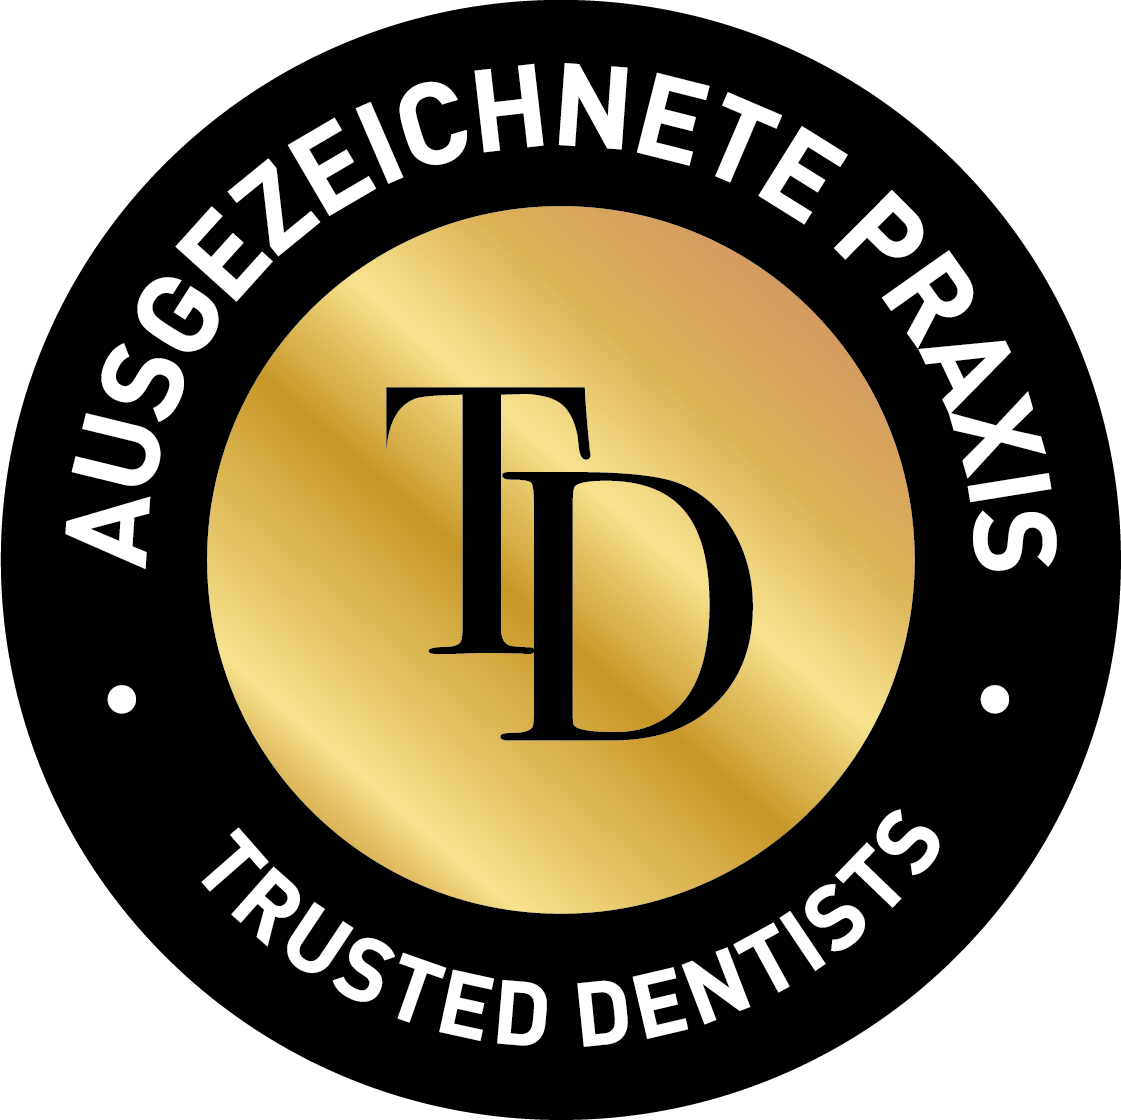 Trusted Dentists Siegel rund